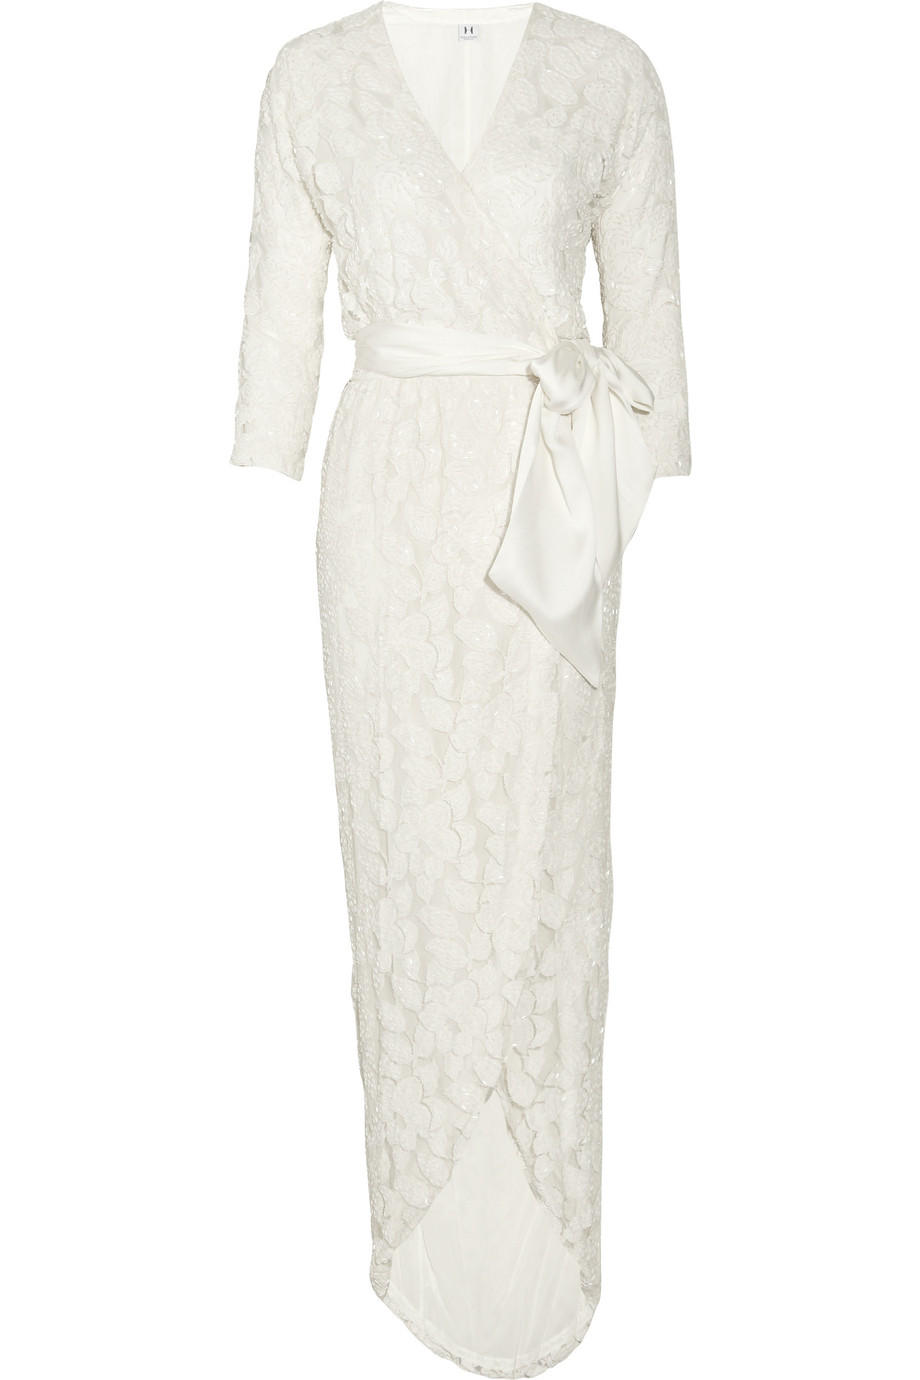 Lyst Halston Embellished Tulle Wrap Dress In Natural